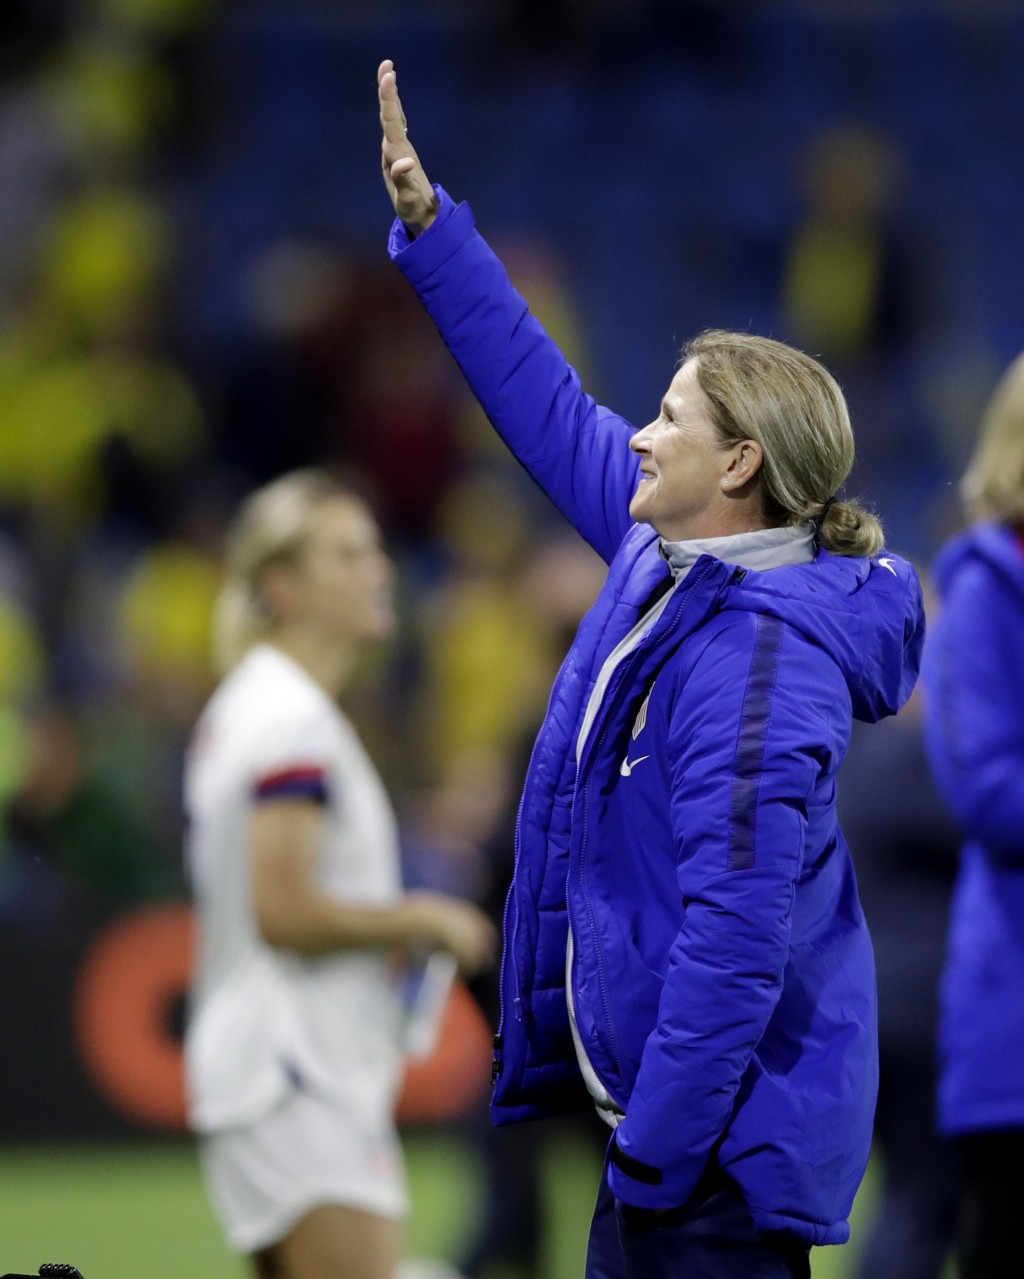 United States coach Jill Ellis waves to the crowd following her team's 2-0 win over Sweden in their Women's World Cup Group F soccer match at Stade Oc...